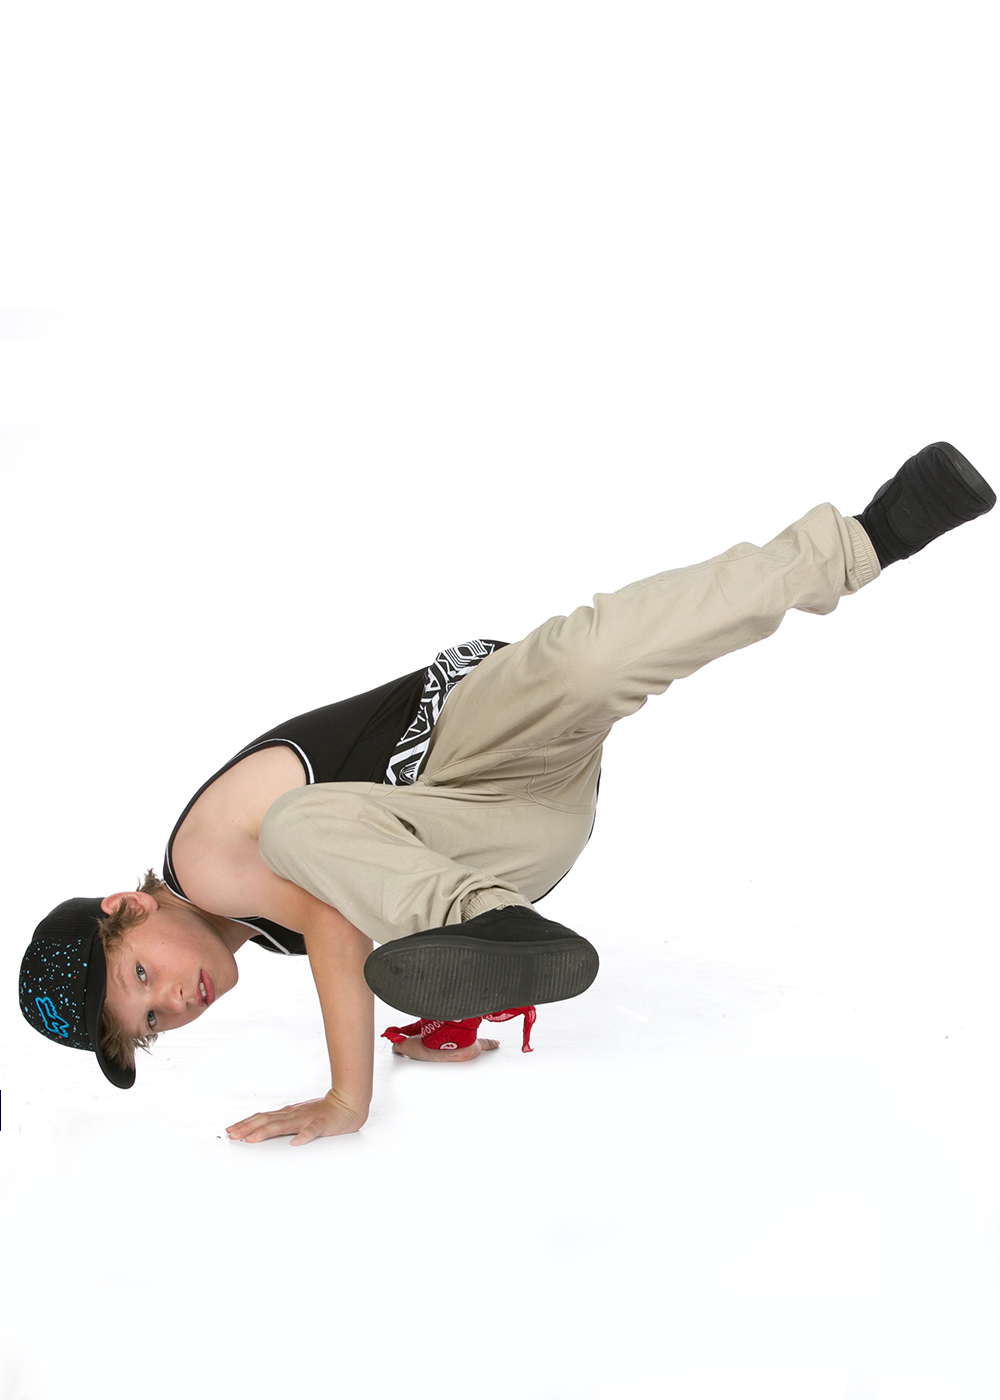 BREAK DANCE - Breaking is a form street dance that incorporates intricate body movements, coordination, style, and aesthetics.